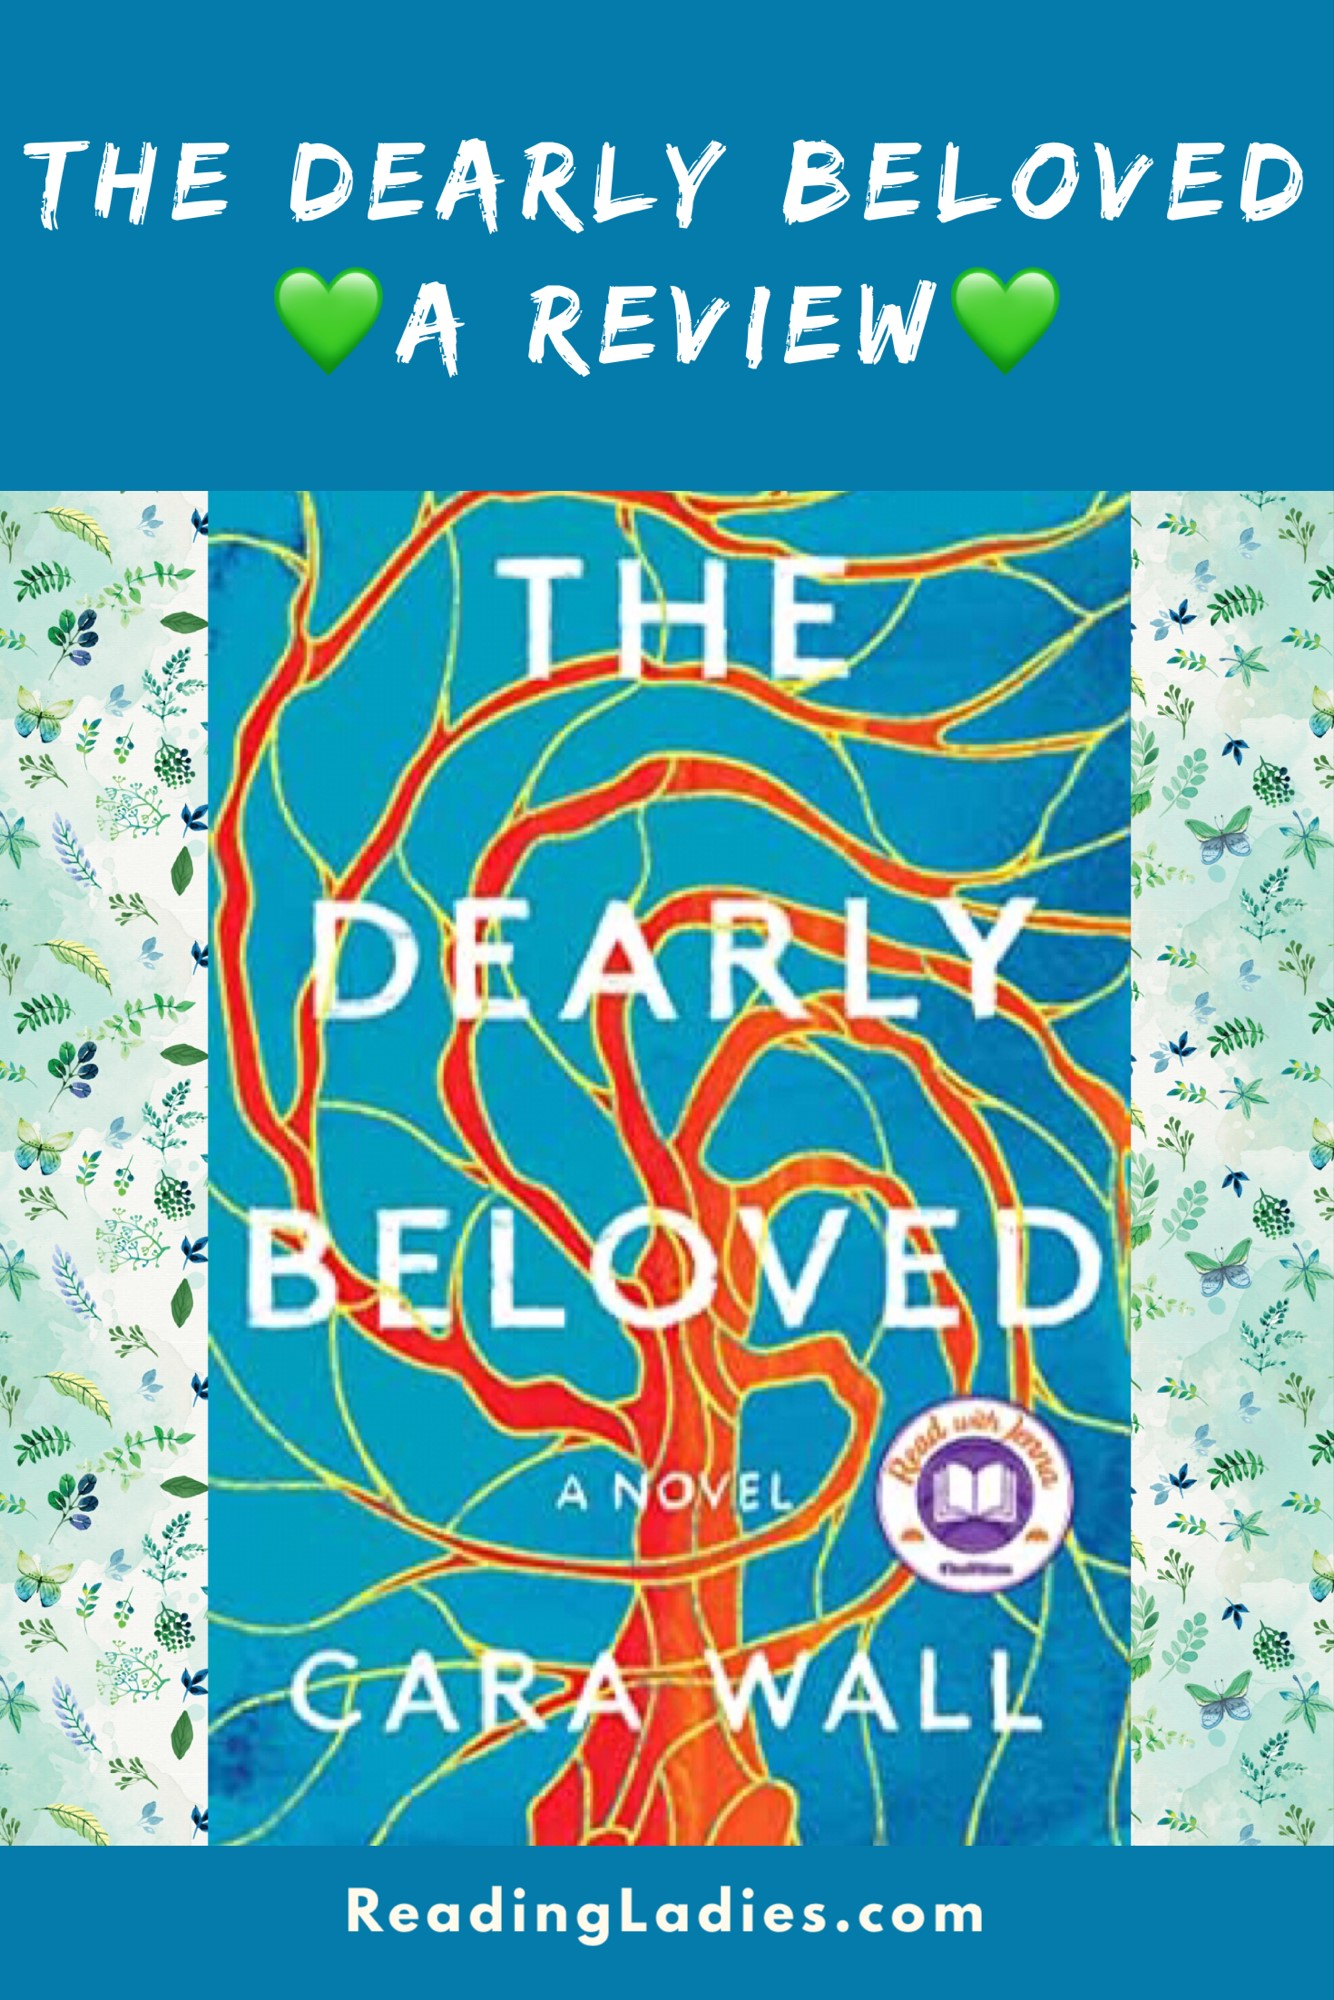 Dearly Beloved by Cara Wall (cover) Image: white text over the graphic image of a tree with long reaching limbs....all against a blue background